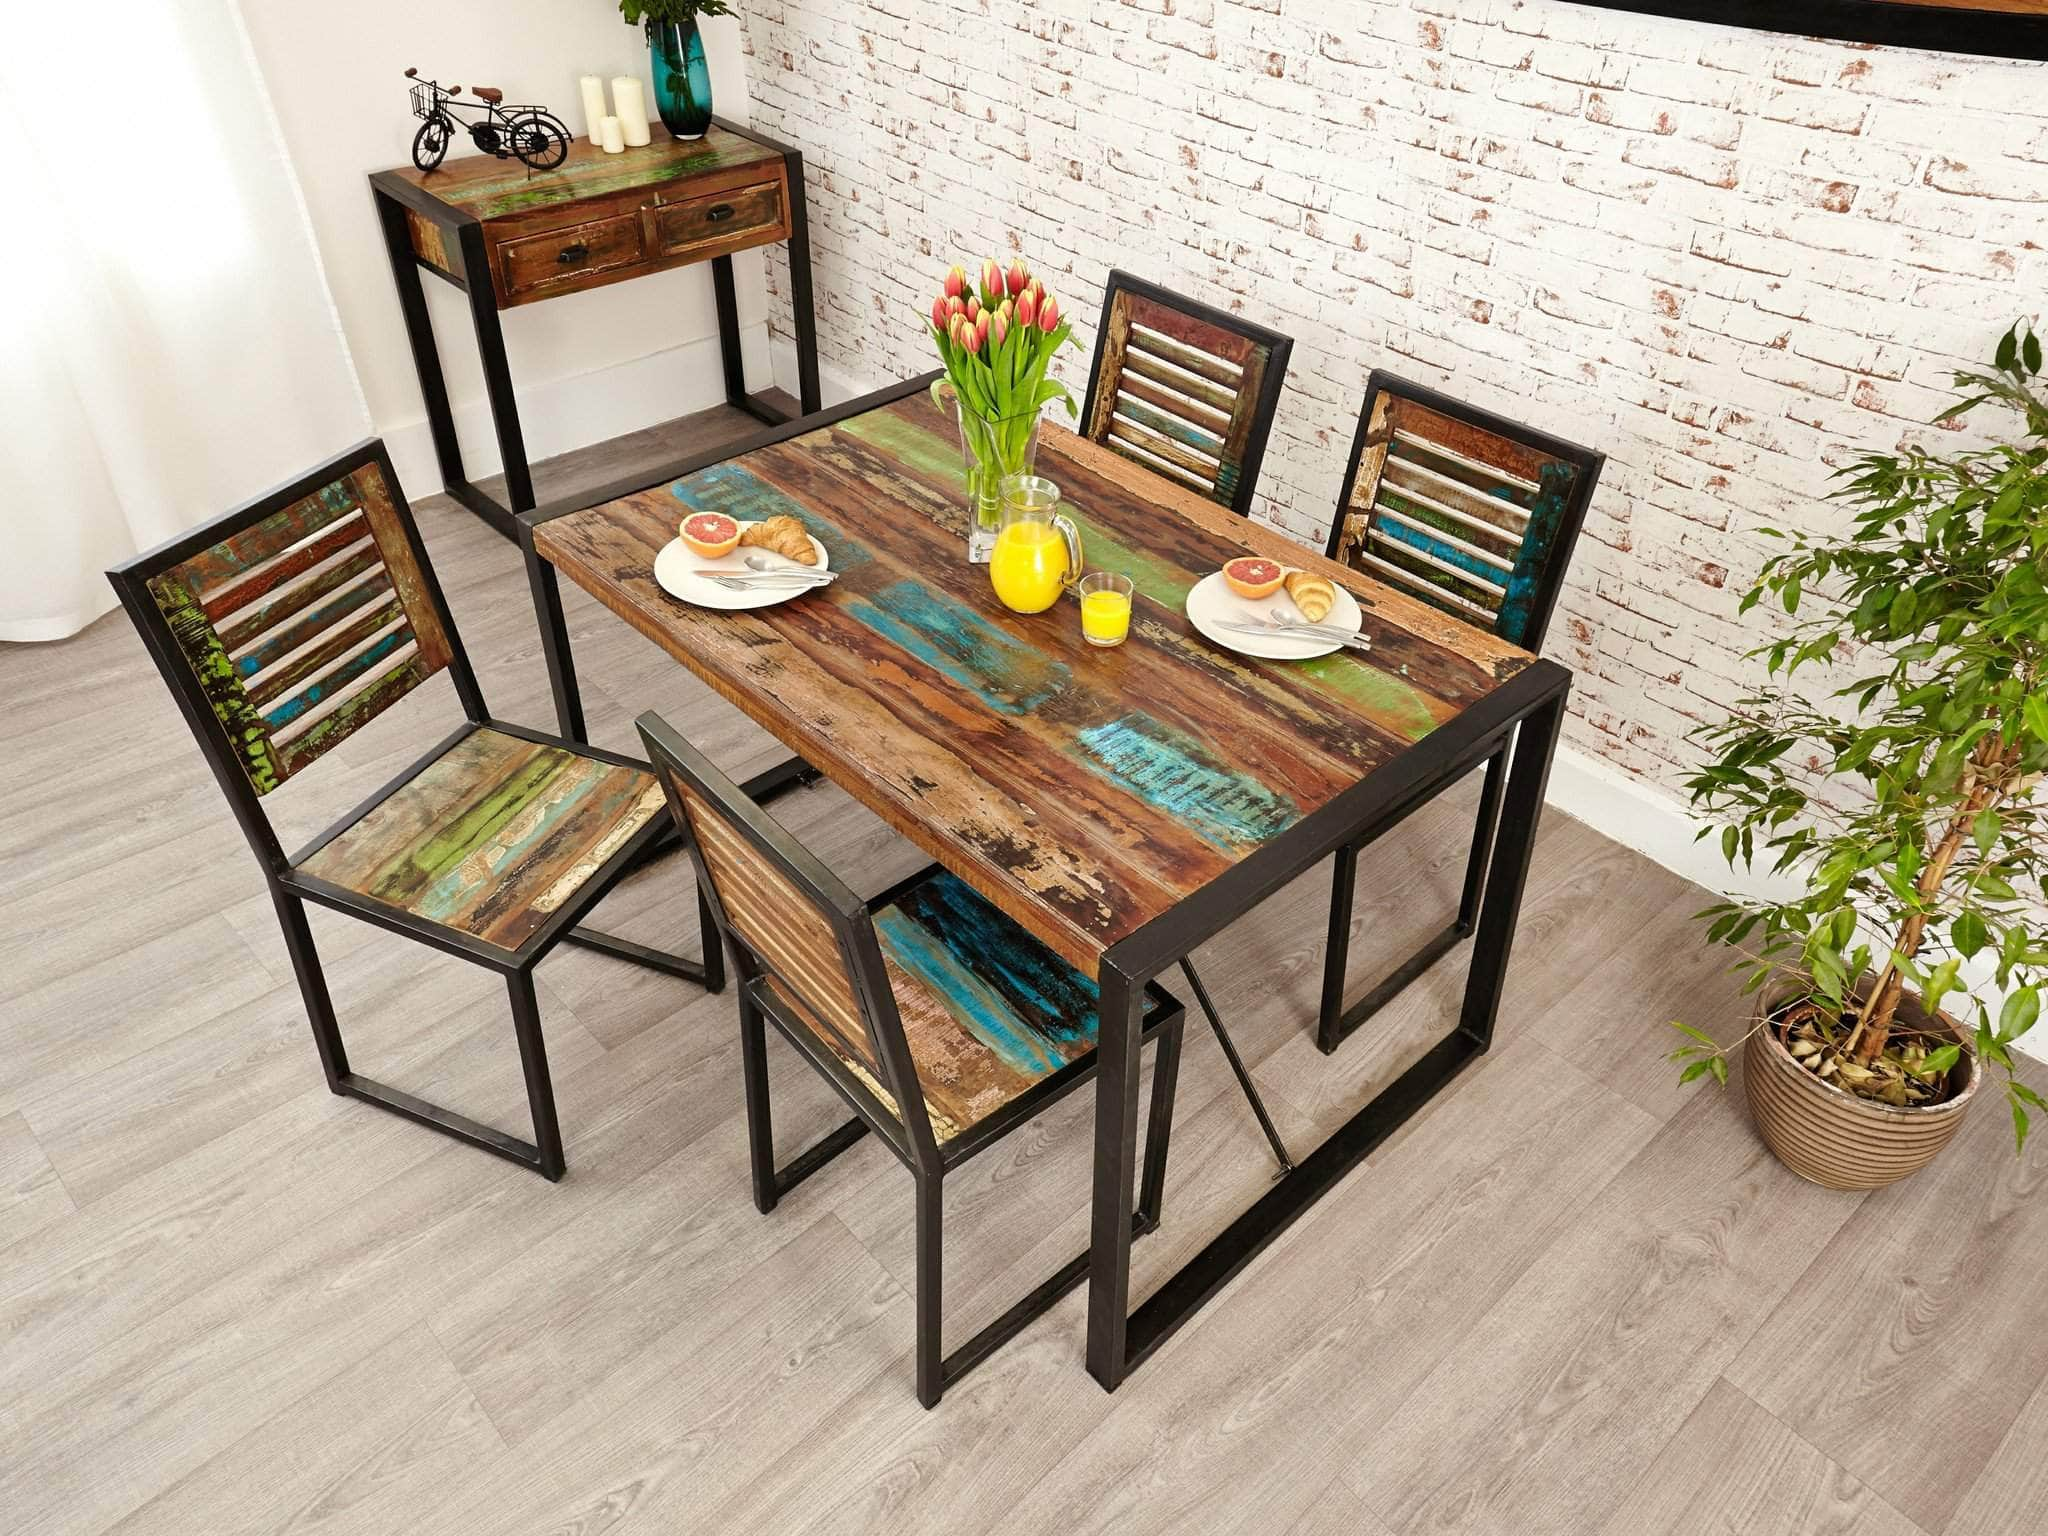 Small Reclaimed Wood Dining Table | Unni & Evans